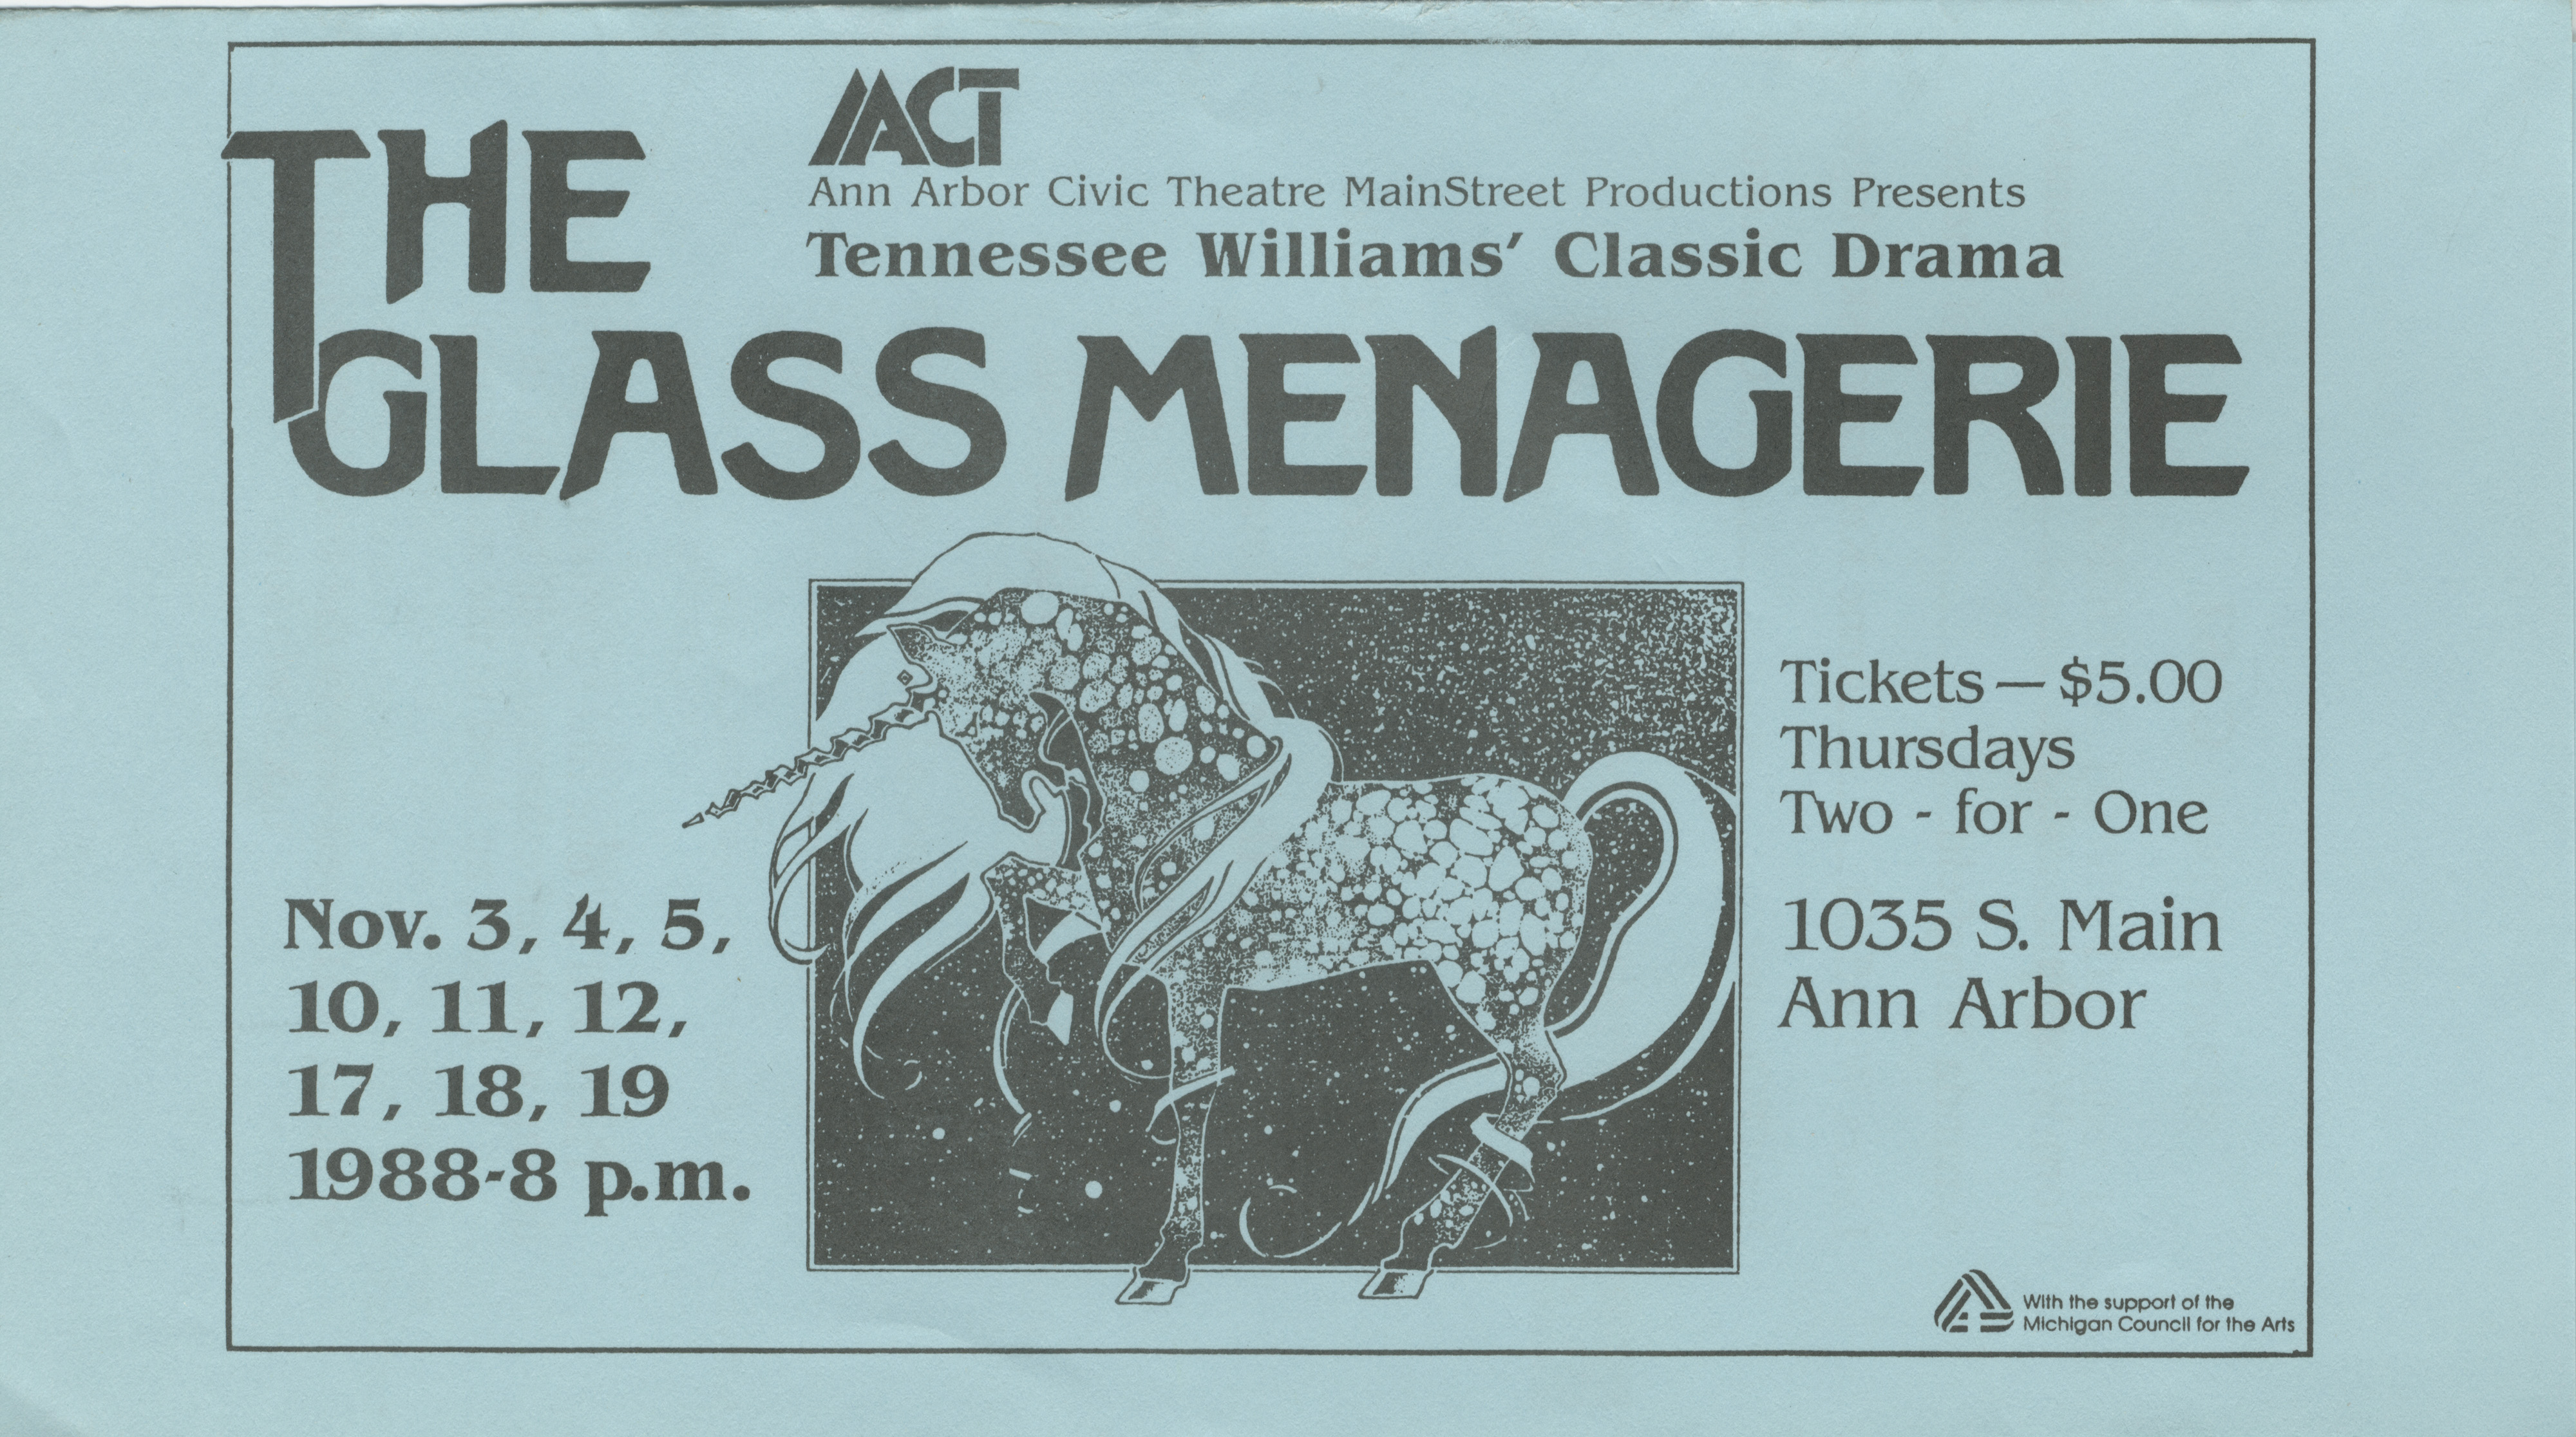 Ann Arbor Civic Theatre Program: The Glass Menagerie, November 03, 1988 image